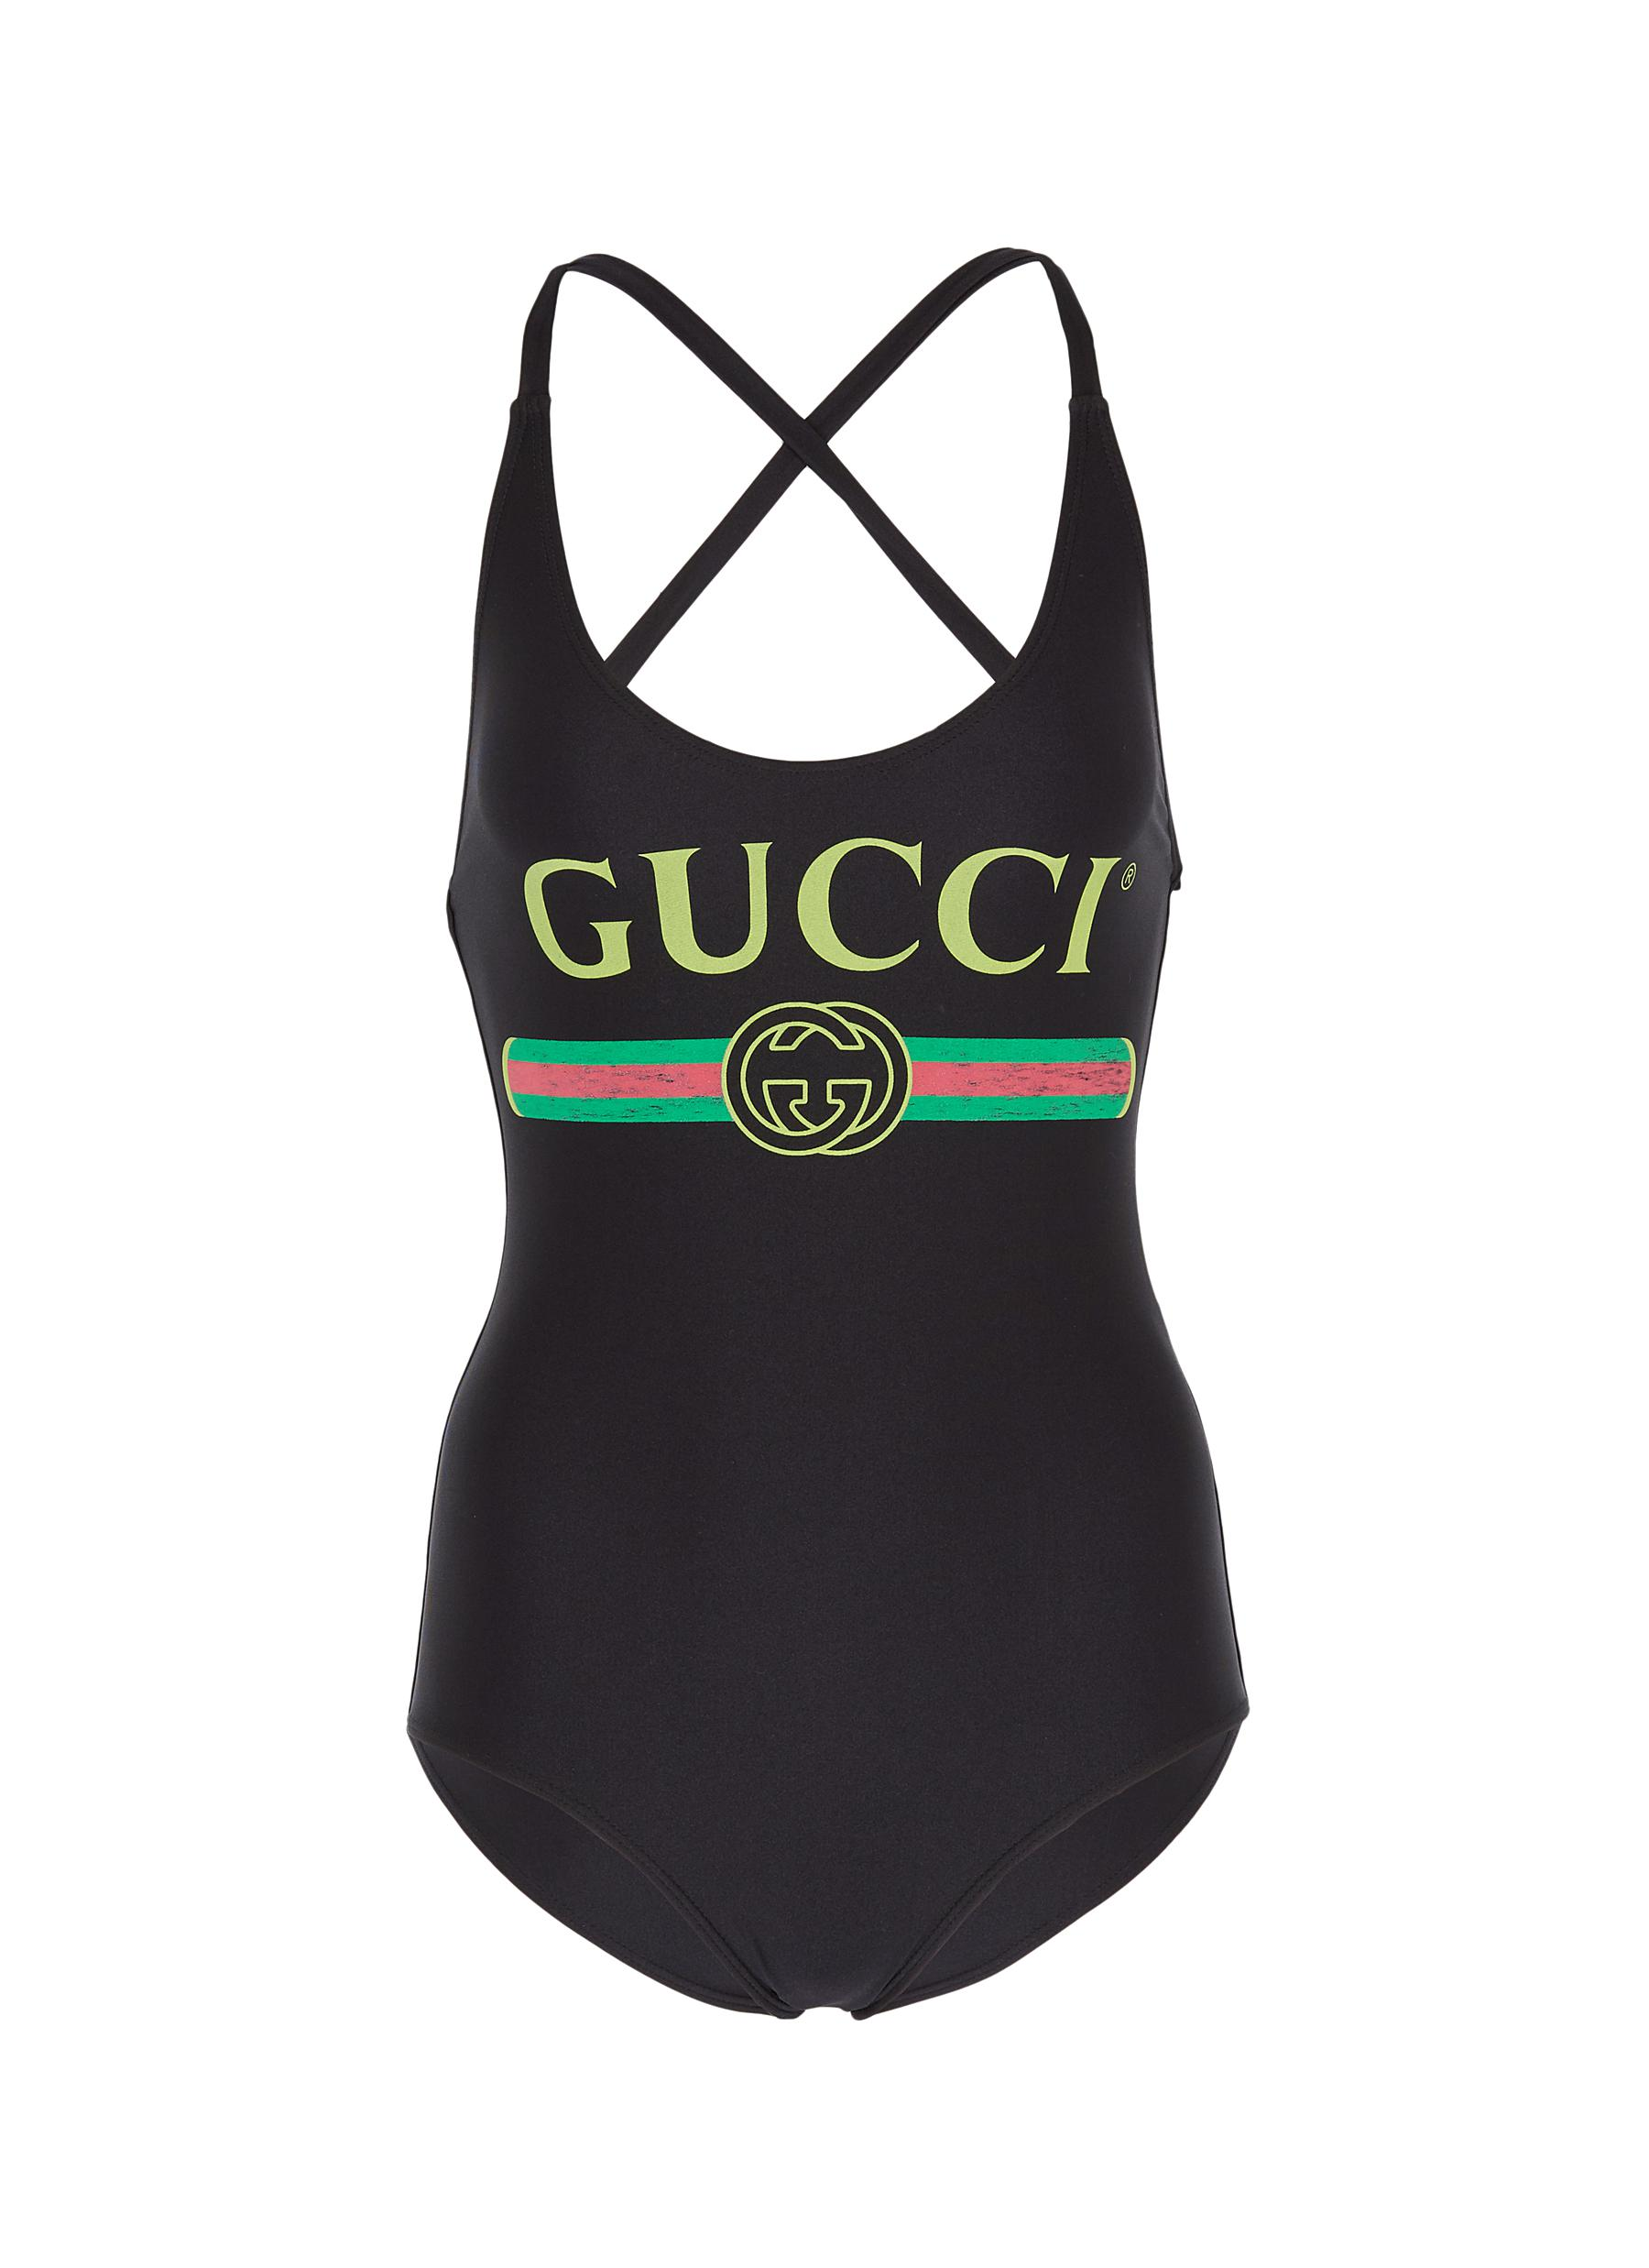 a58a64ef2e Main View - Click To Enlarge - Gucci - Logo print one-piece swimsuit